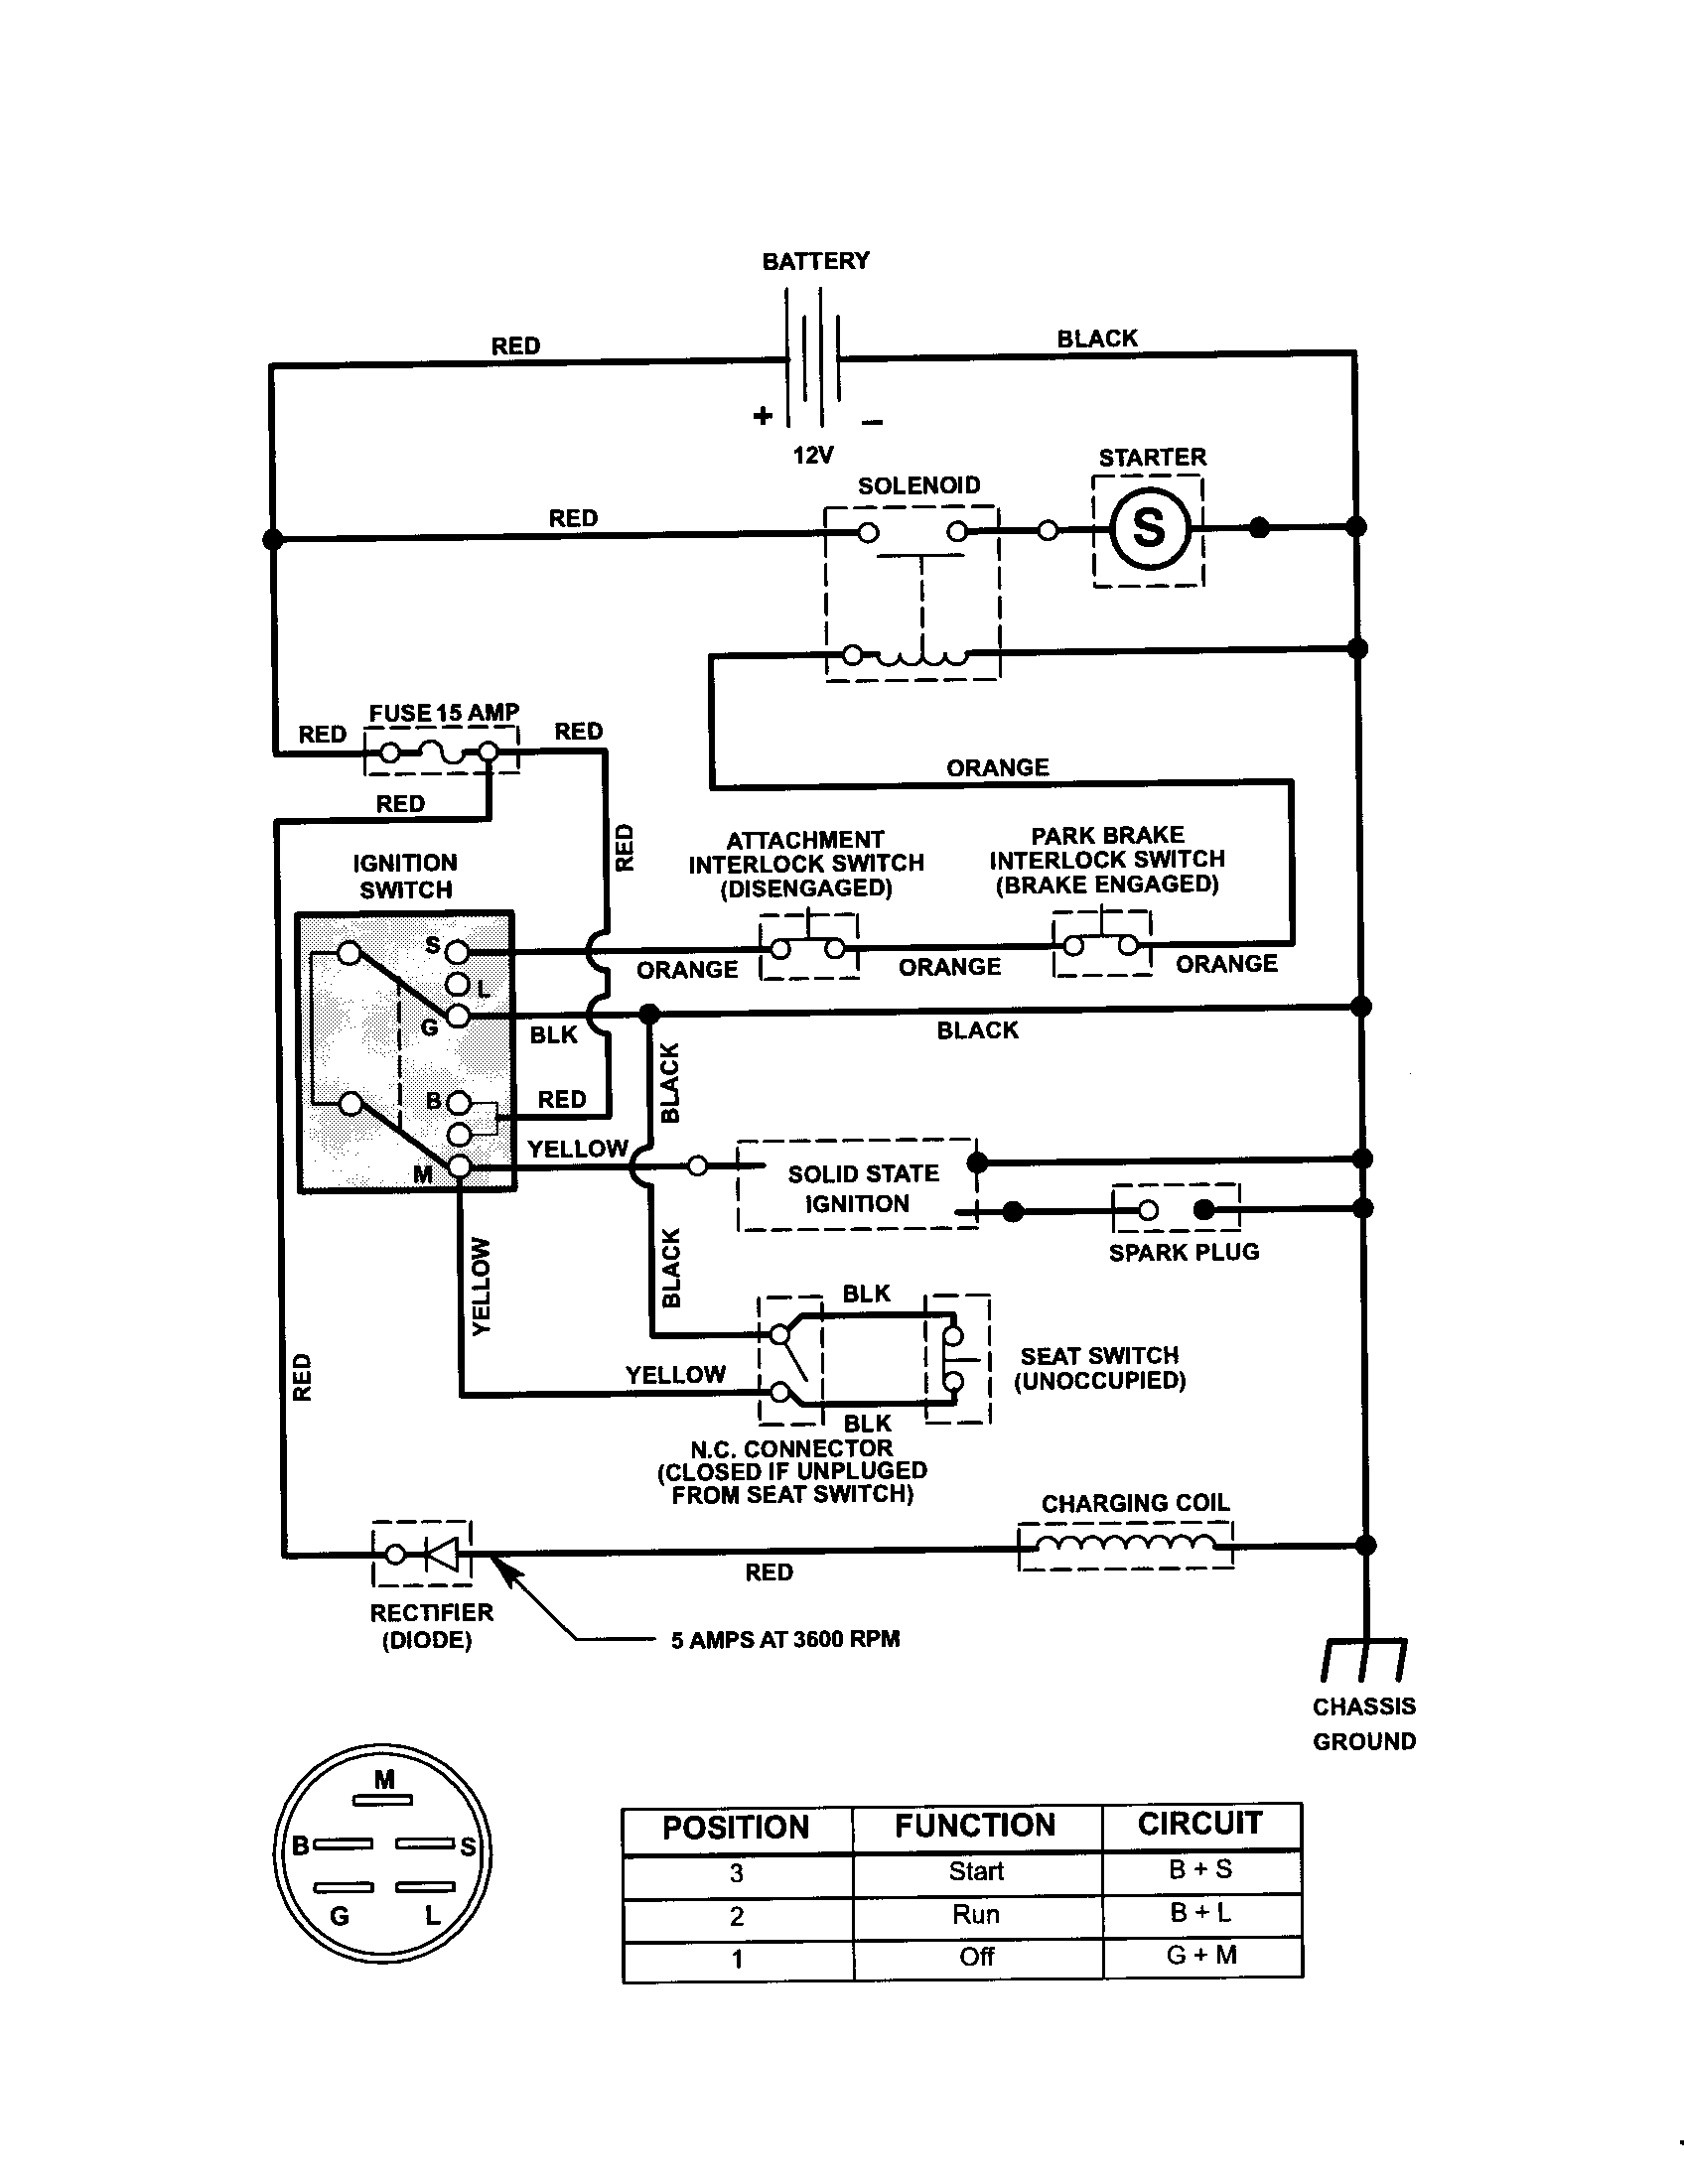 1b4fc64e2bcb7b381848942ff5c84dce craftsman riding mower electrical diagram pictures of craftsman craftsman lawn mower wiring harness at panicattacktreatment.co